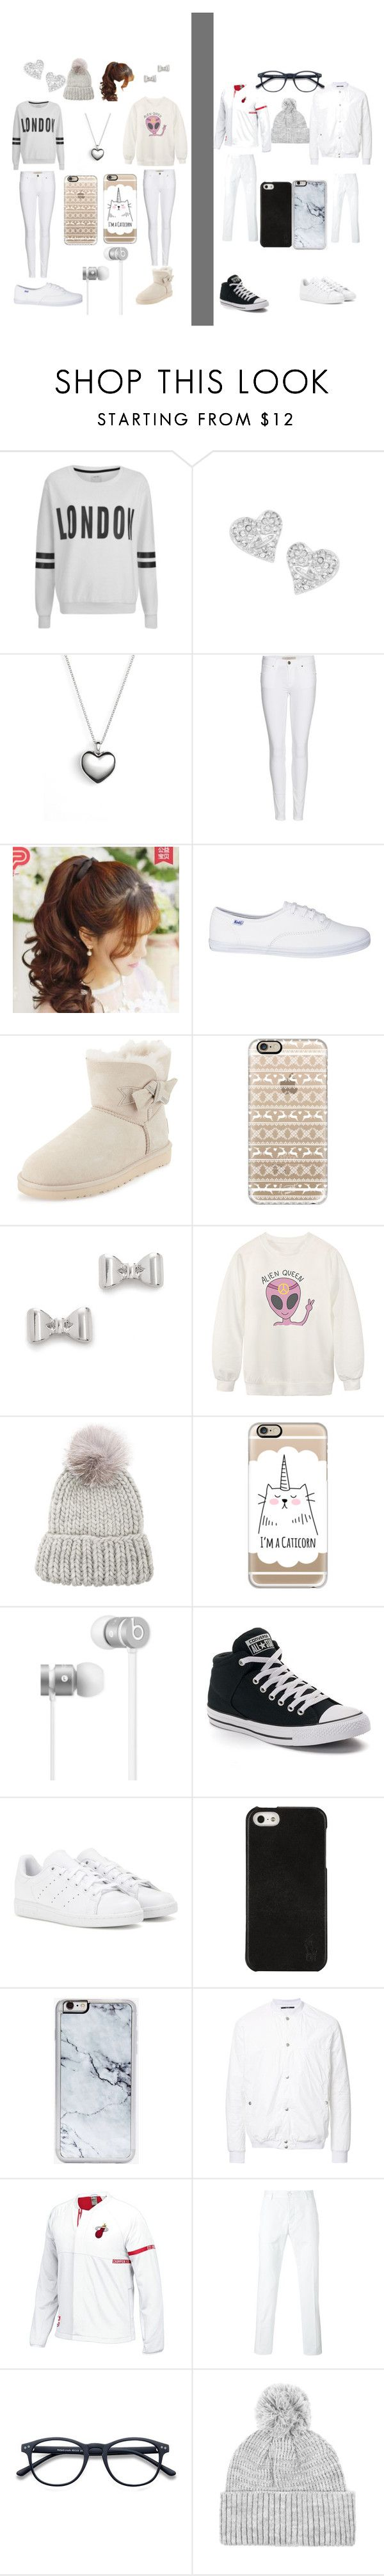 """""""WINTER FAMILY"""" by tinkbel on Polyvore featuring beauty, ONLY, Vivienne Westwood, Pandora, Burberry, Pin Show, UGG Australia, Casetify, Marc by Marc Jacobs and Chicnova Fashion"""